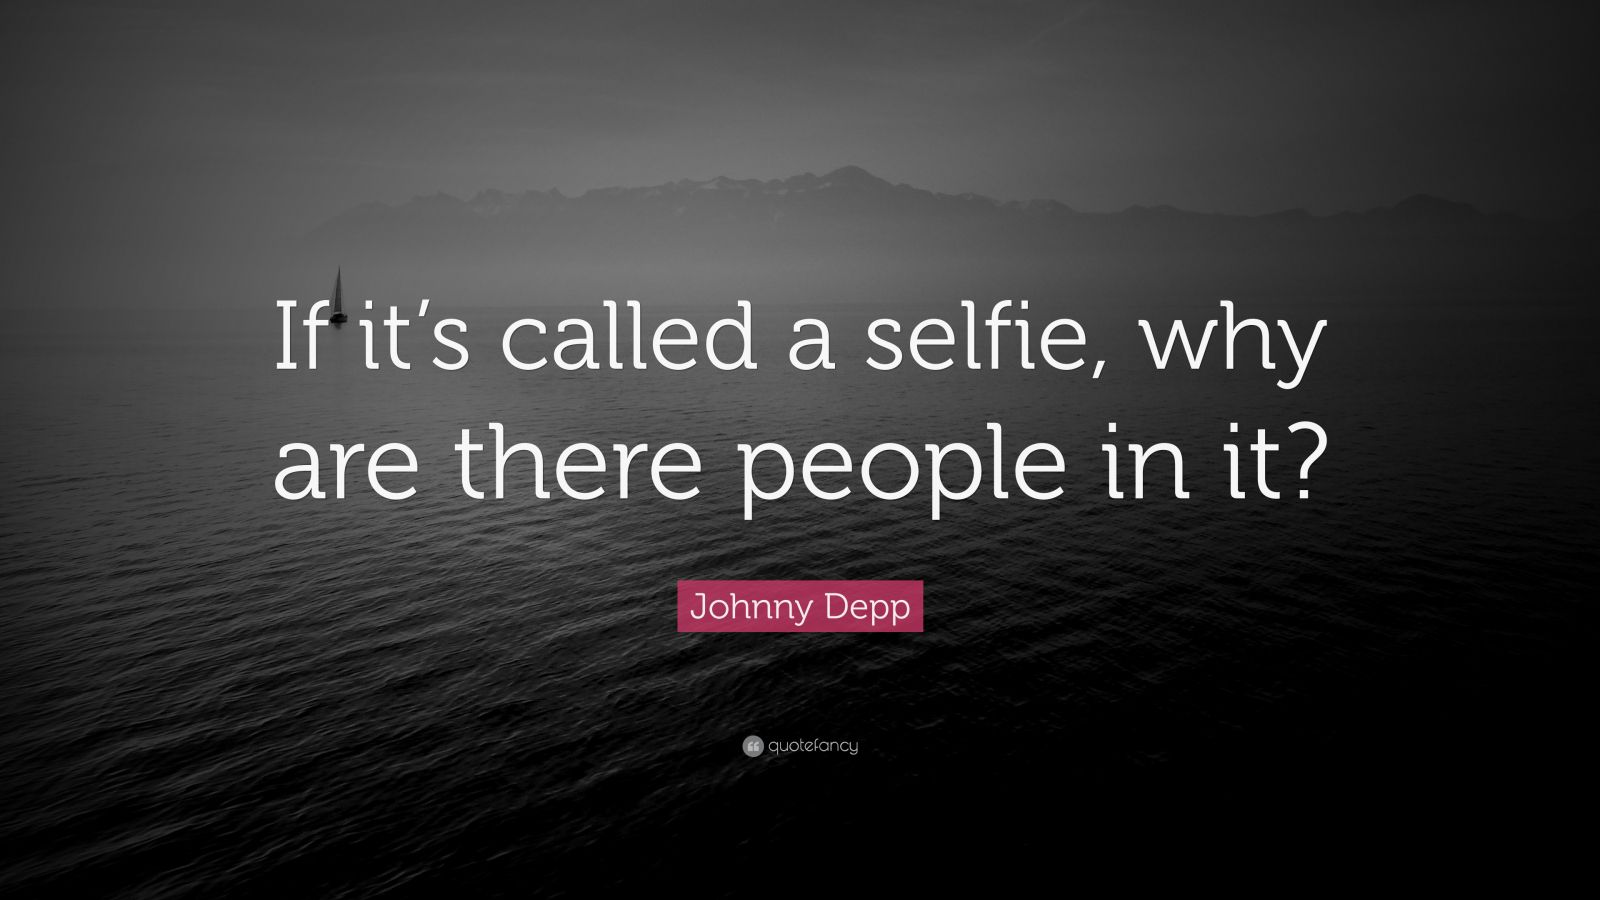 """Johnny Depp Quote: """"If it's called a selfie, why are there people in it?"""""""